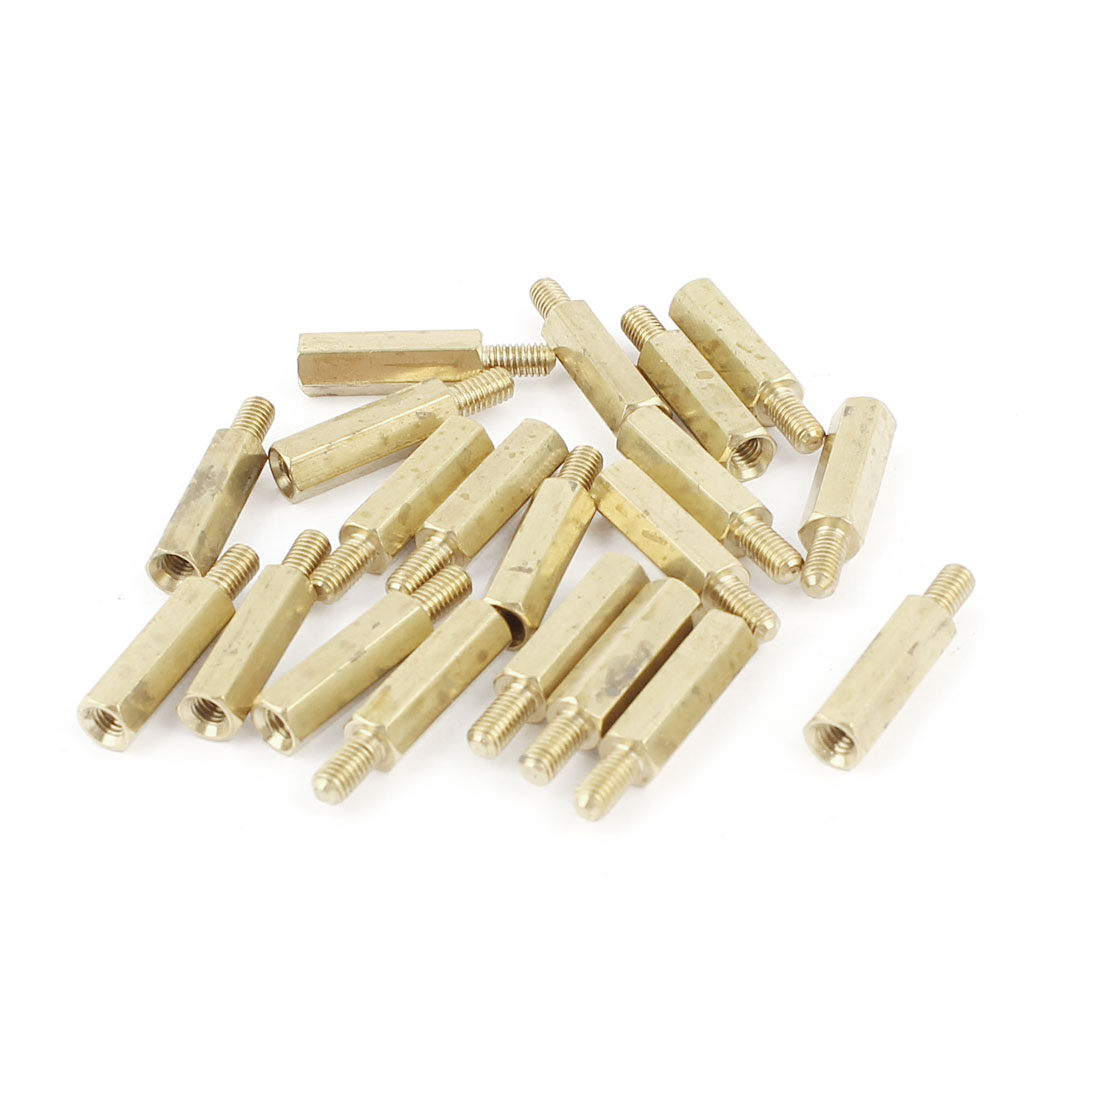 20Pcs M3x6mm Male to Female Thread Brass Pillar Standoff Spacer 21mm Long